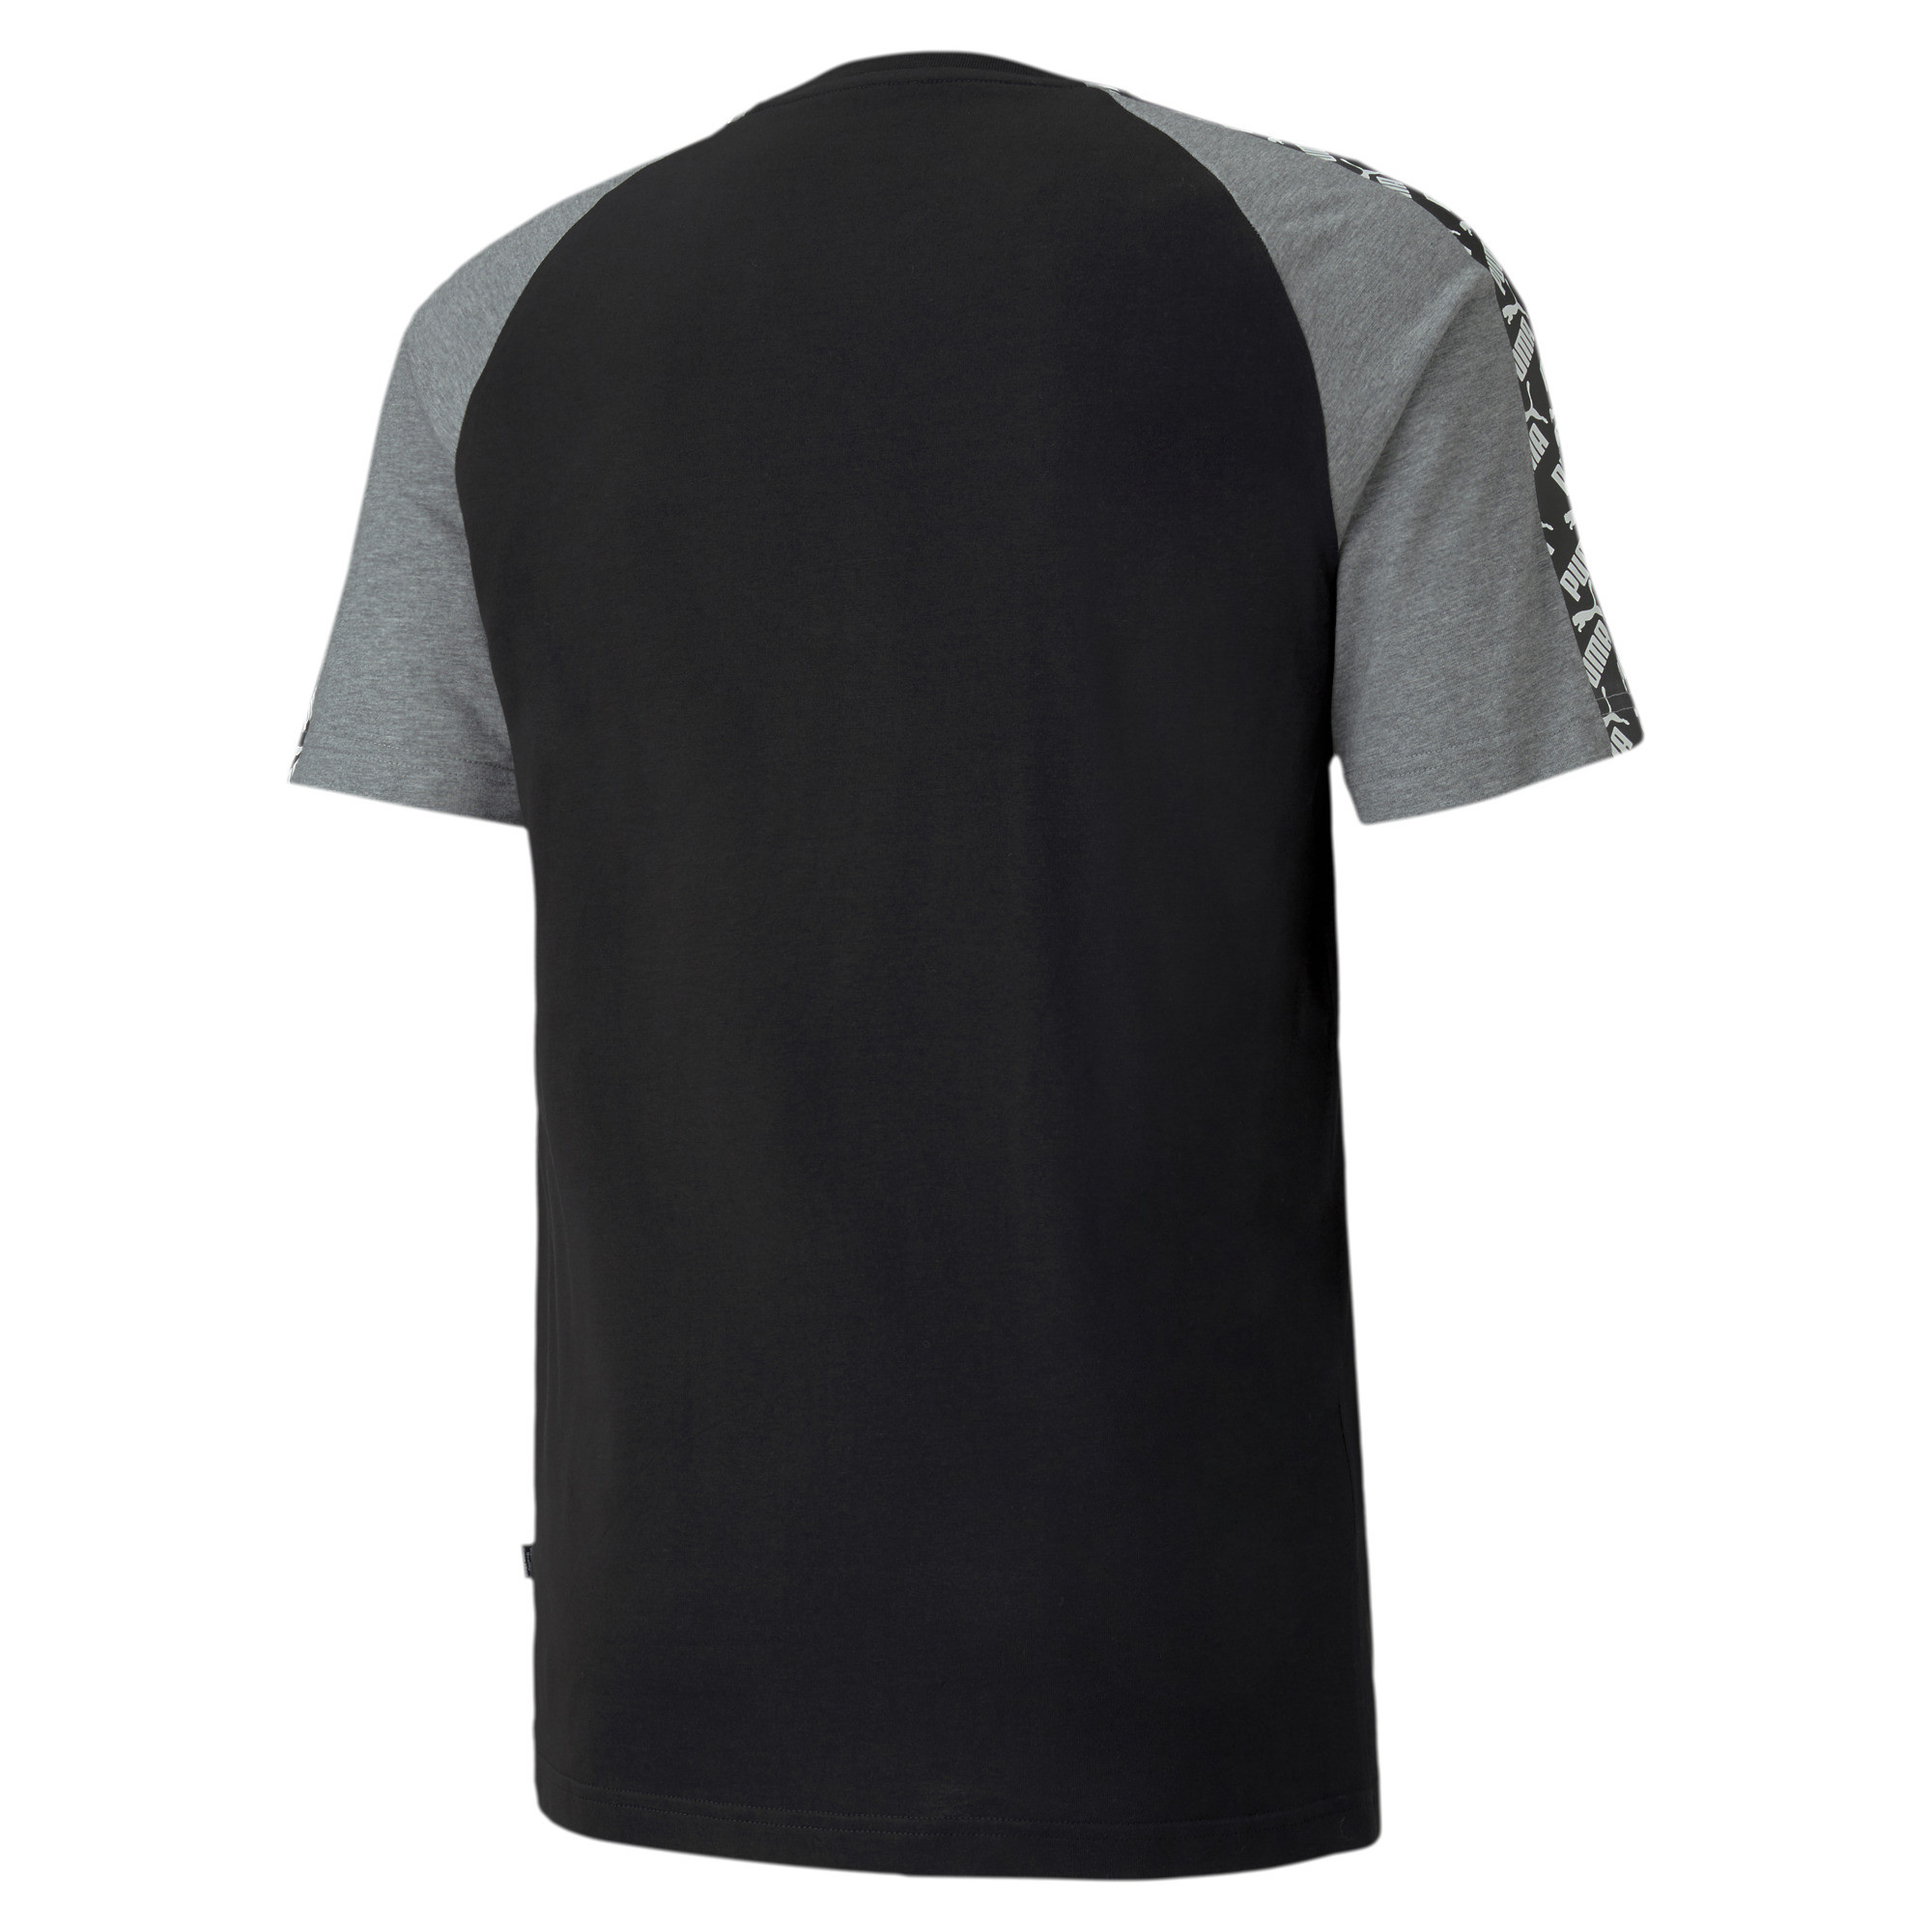 PUMA-Amplified-Men-039-s-Raglan-Tee-Men-Tee-Basics thumbnail 11